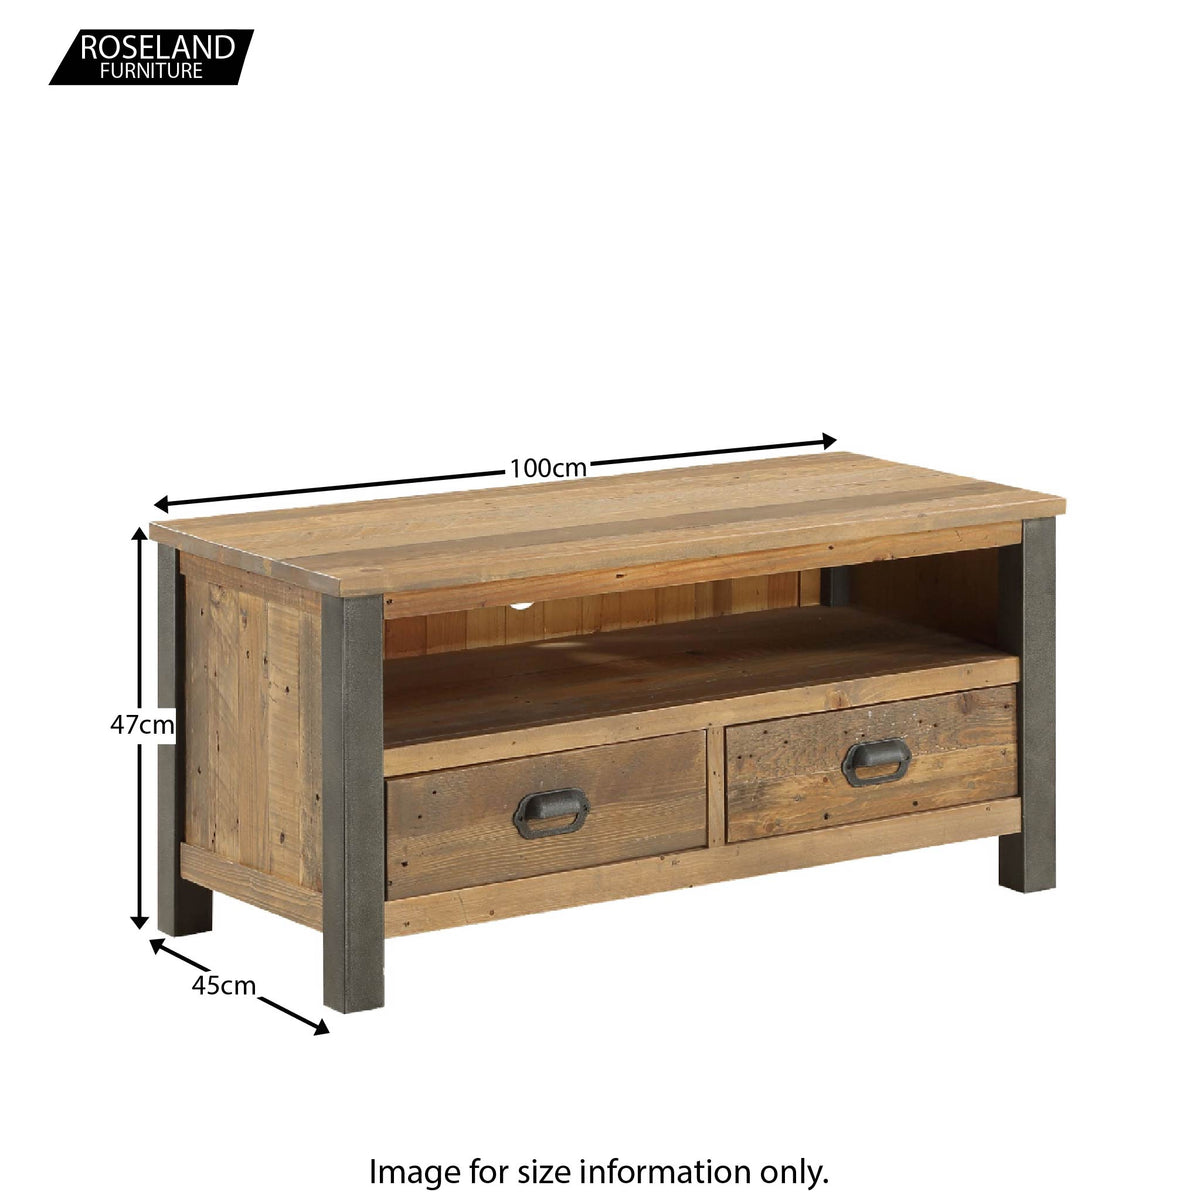 Dimensions for Urban Elegance Industrial Reclaimed Wood TV Stand  47 x 100 x 45 cm